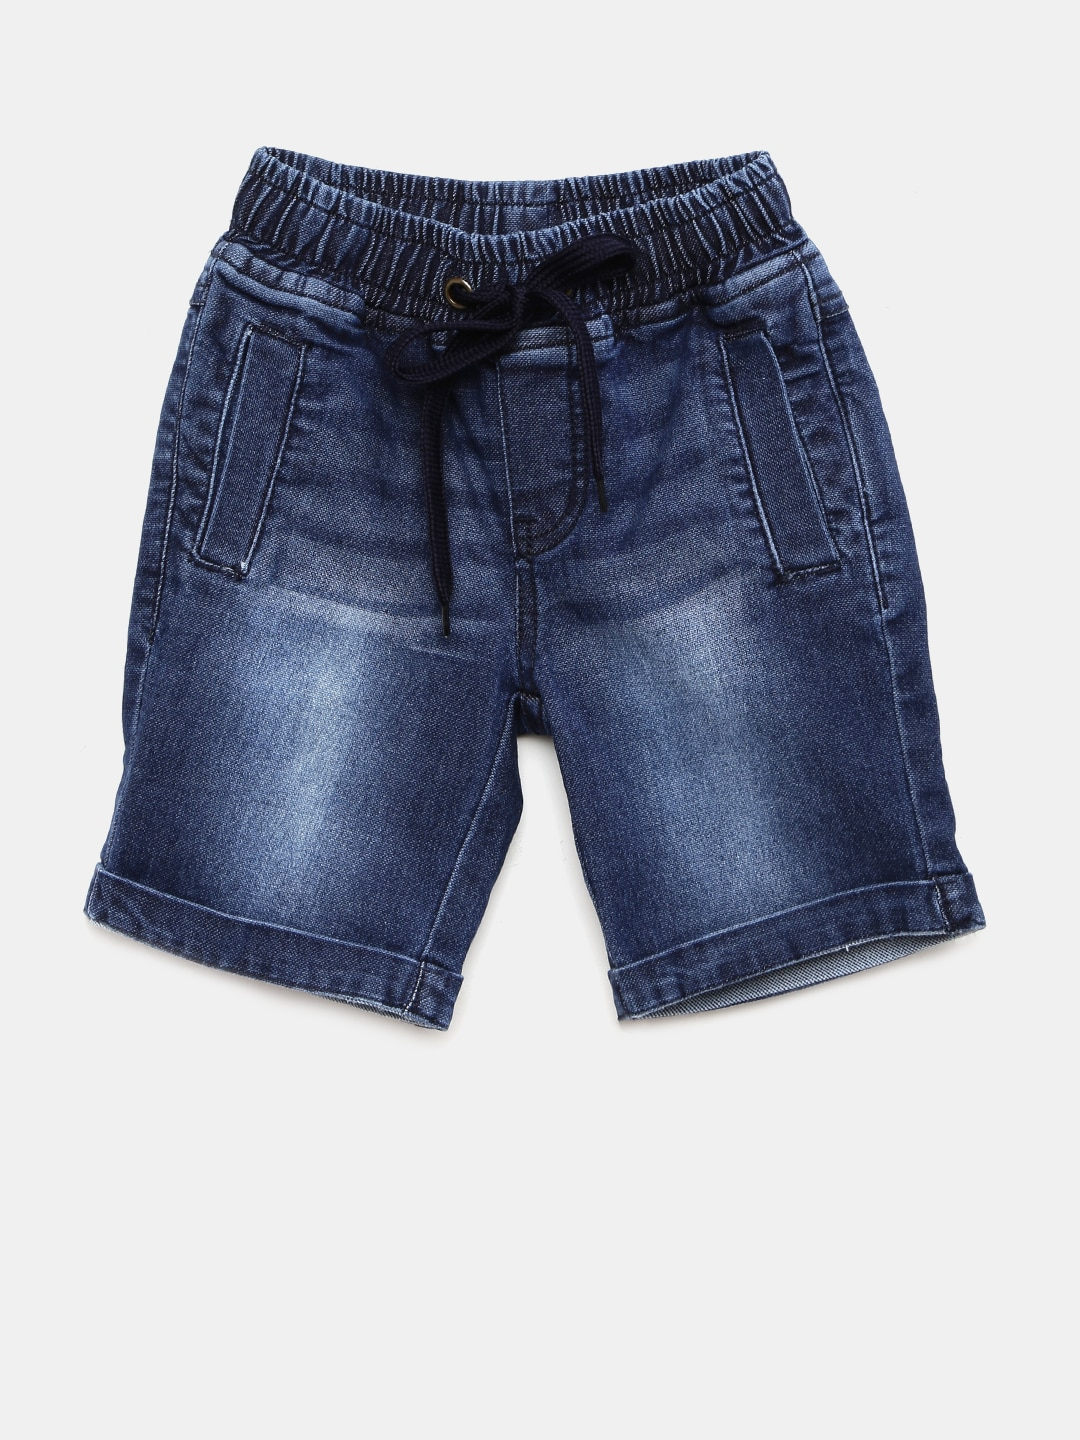 3b7cf27cd6f Boys Shorts - Buy Shorts for Boys Online in India